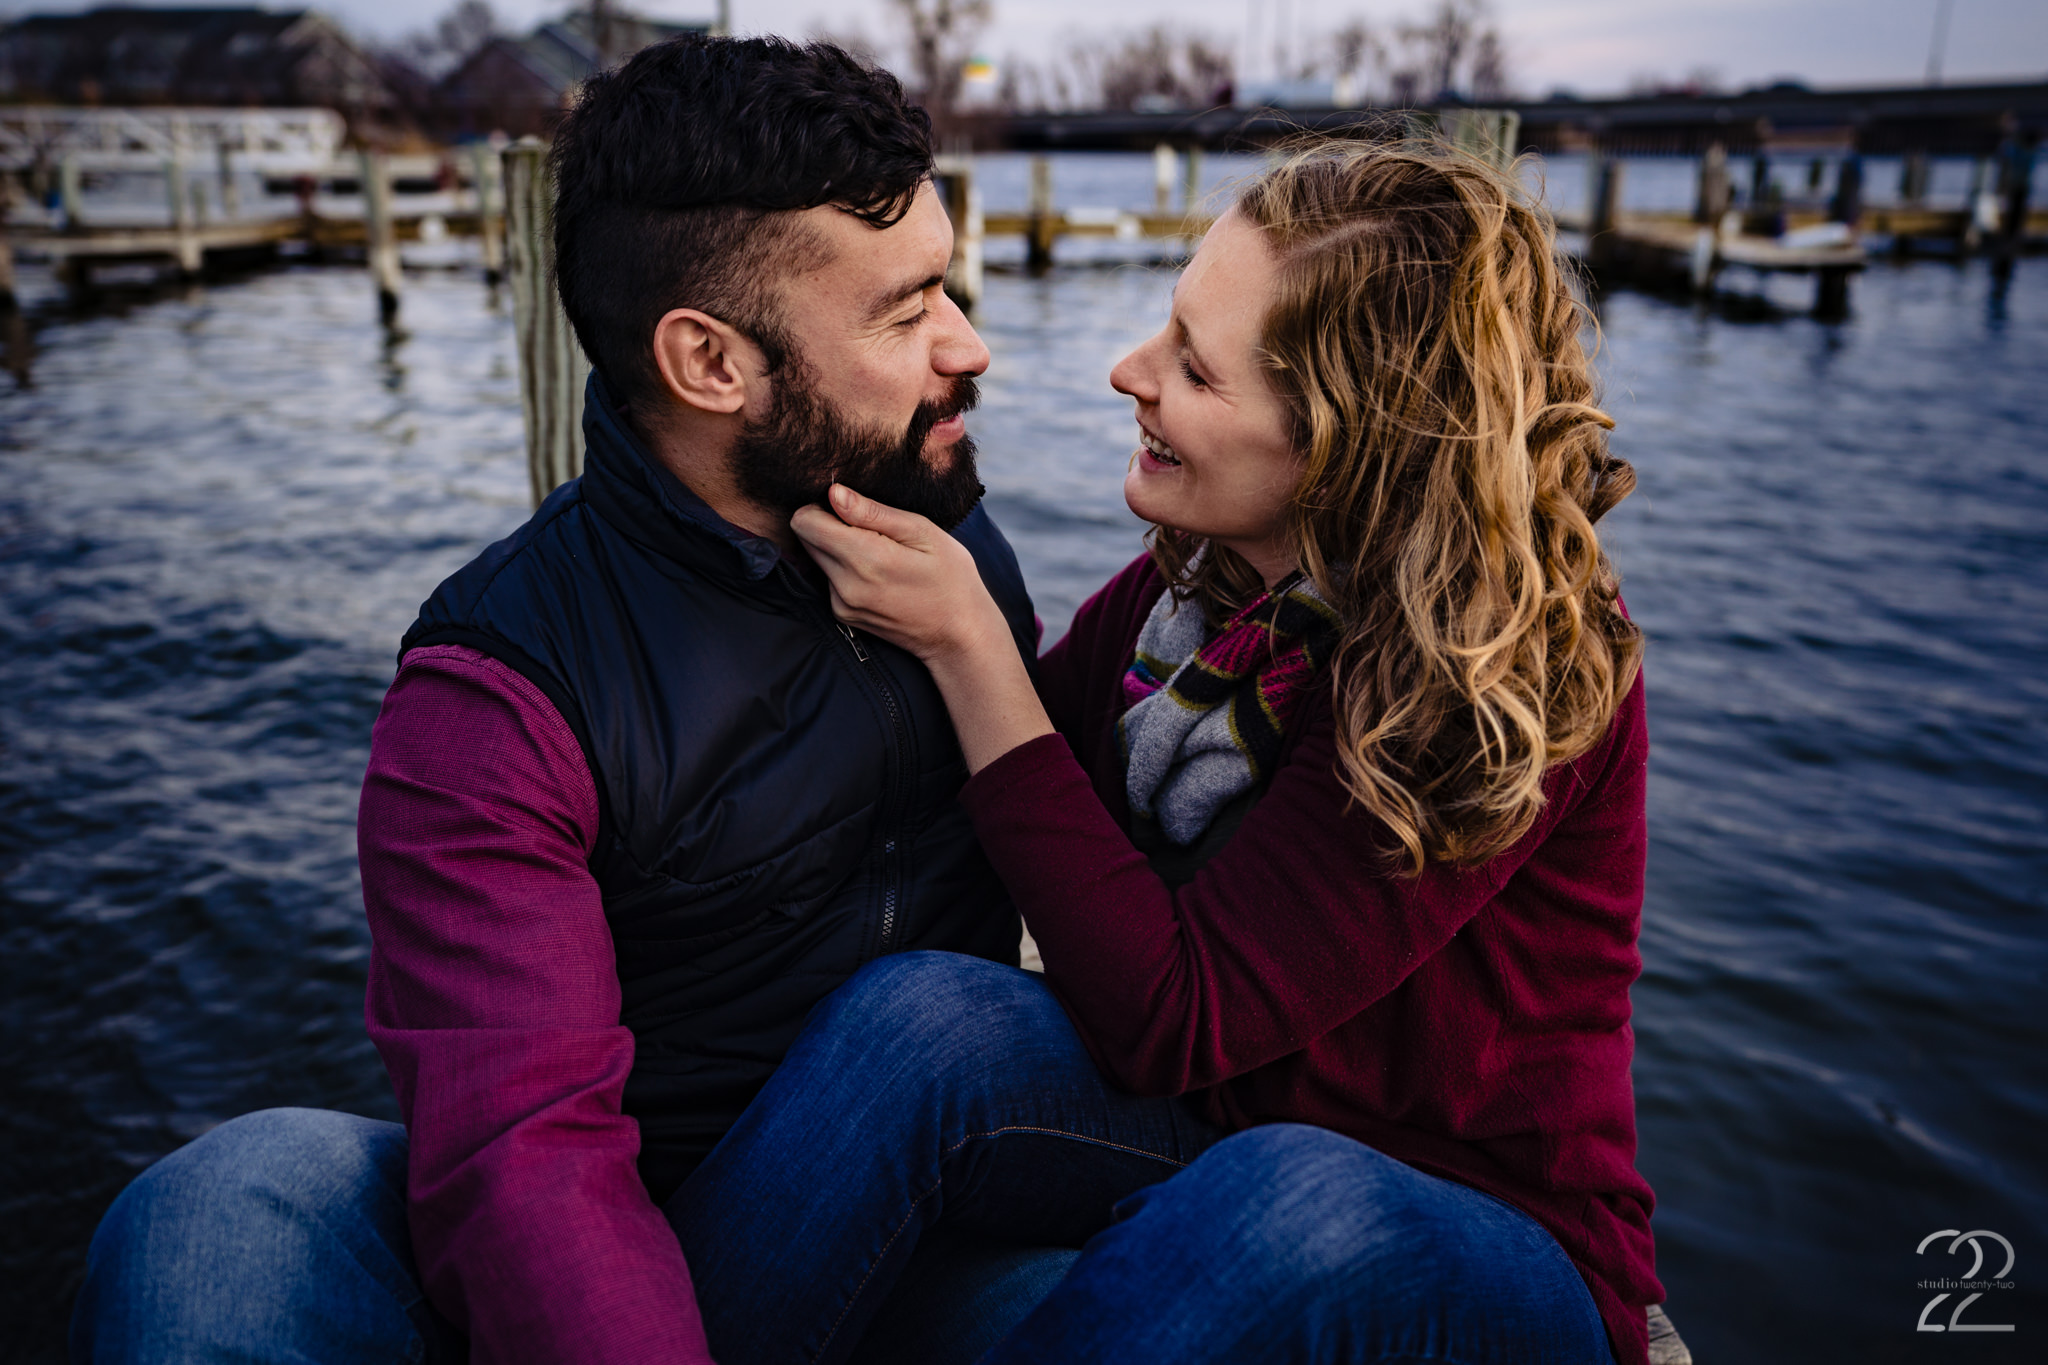 Fall photo sessions bring out the best looks. The rich and deep jewell tones, the layers and the accessories all combine into beautiful images. It also helps that the chilly temperatures force couples to snuggle in tighter than they may in the heat of the summer sun.